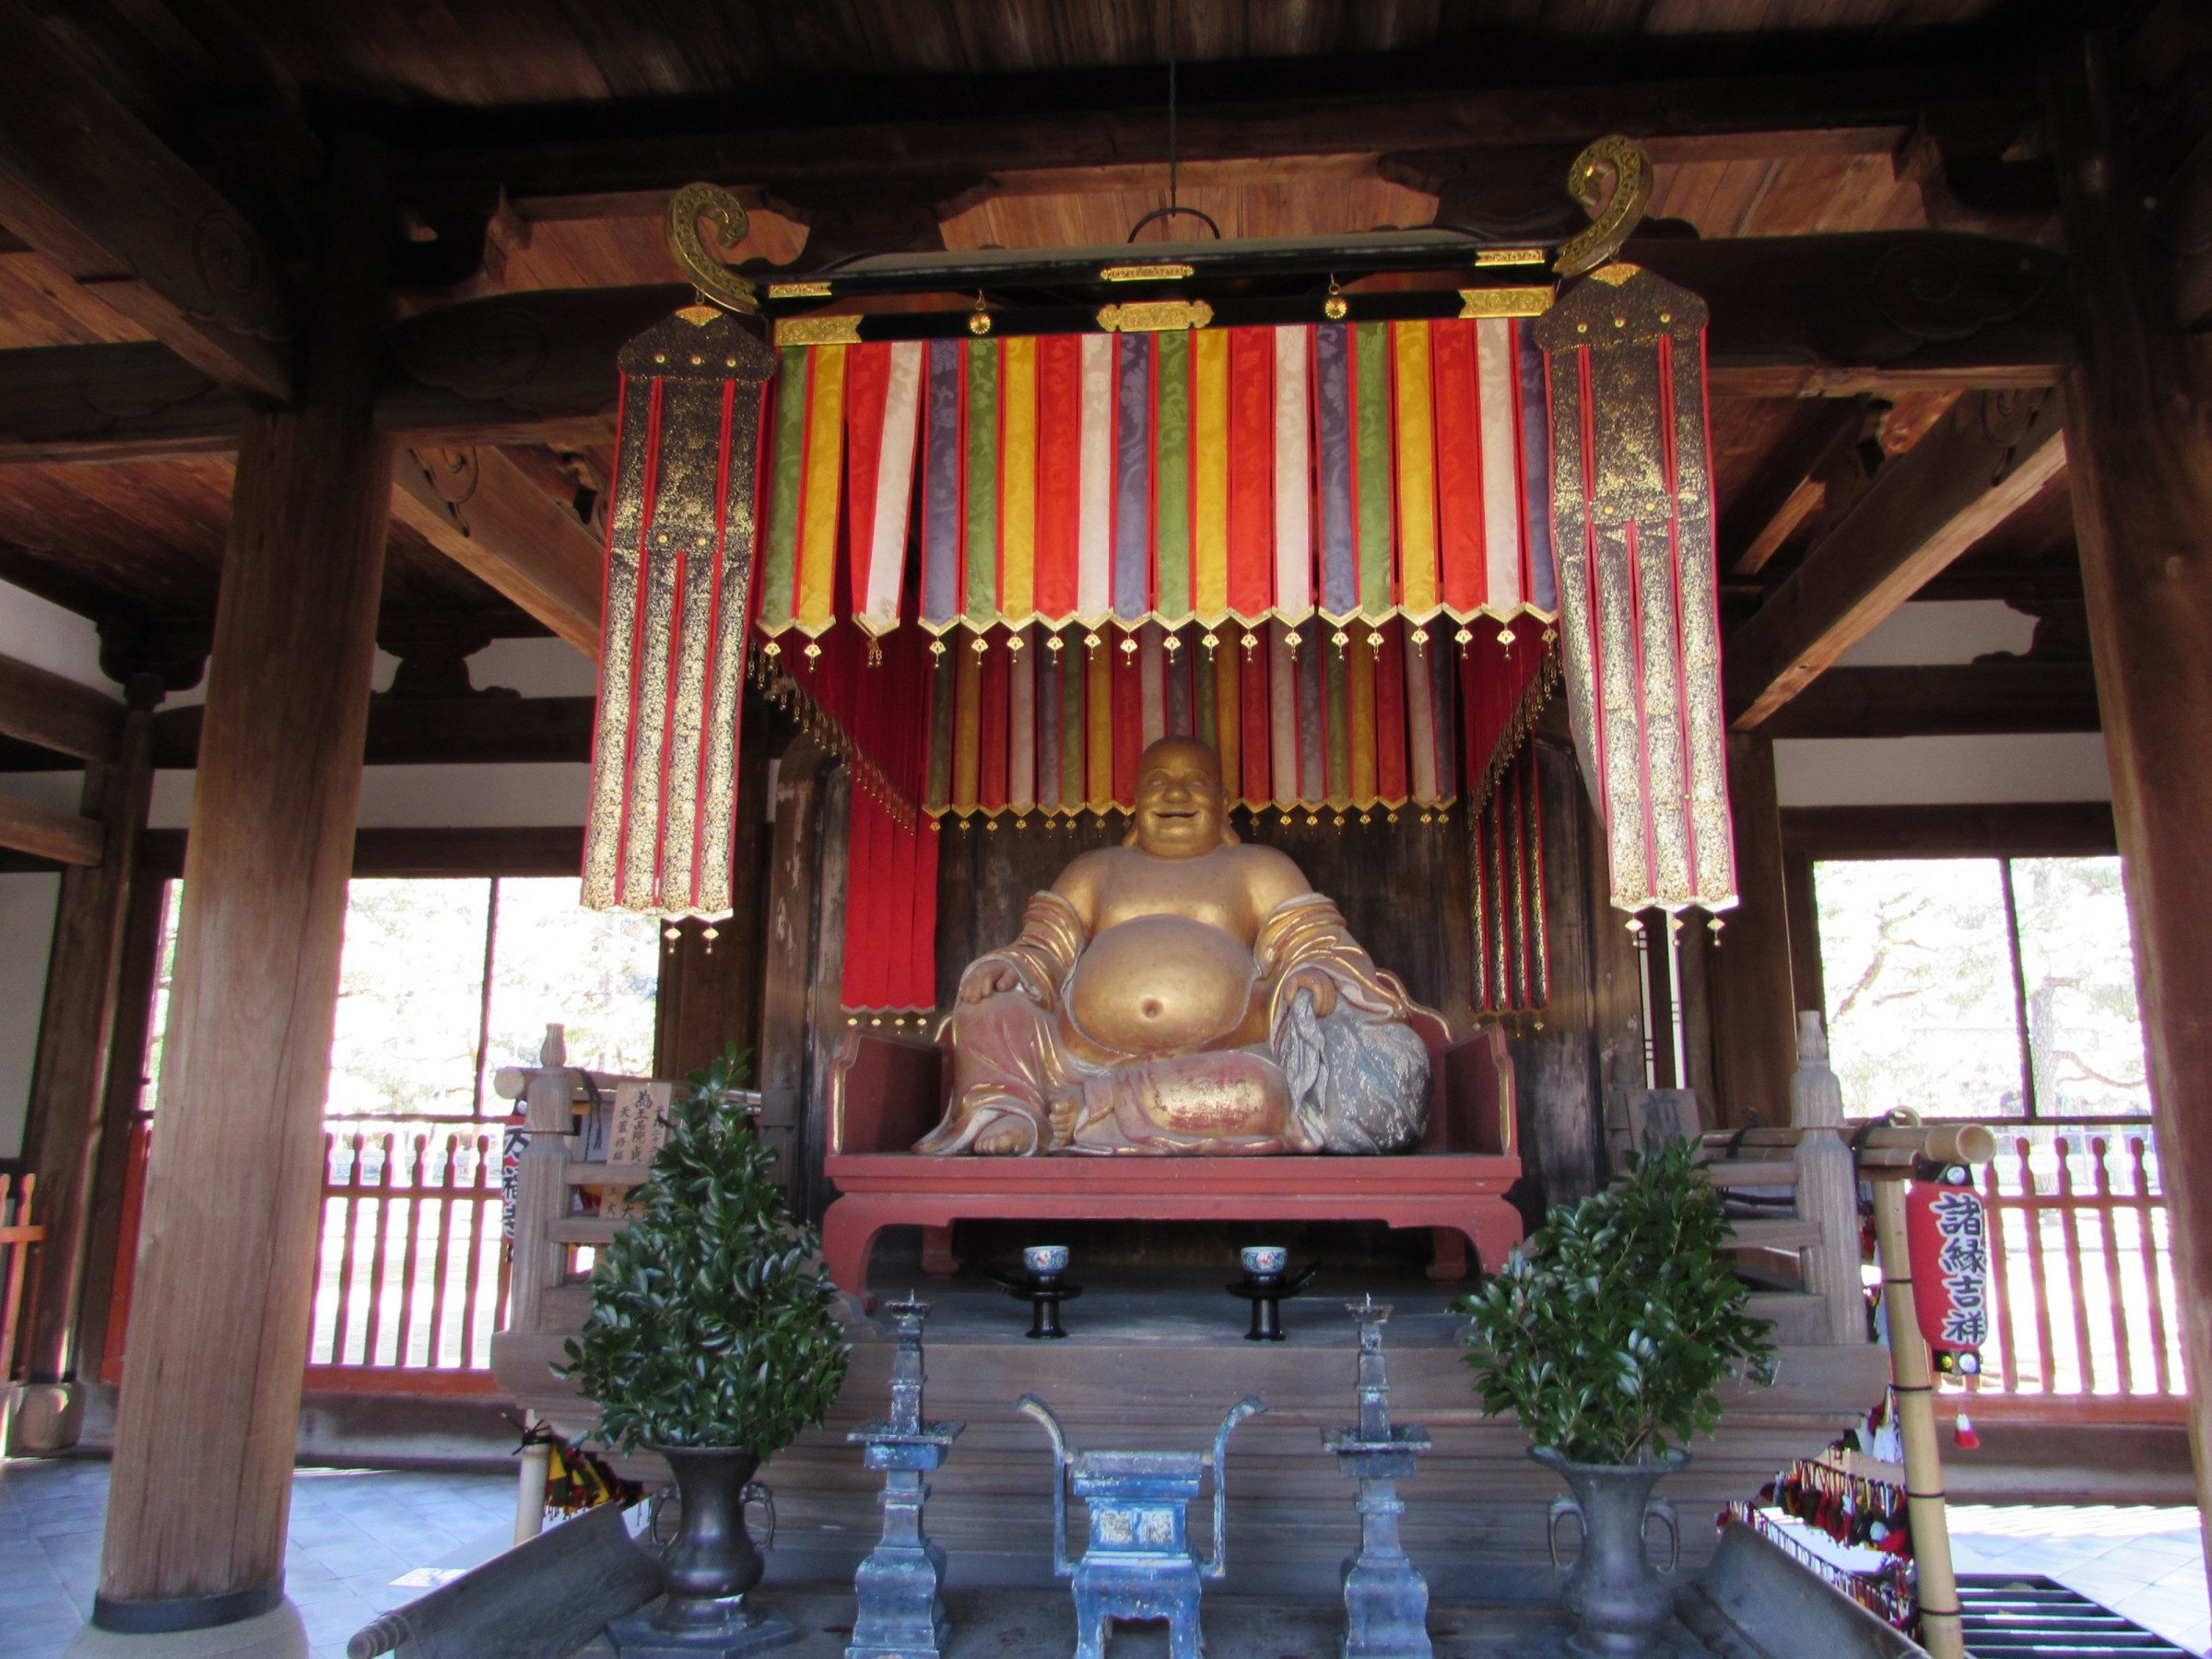 After passing through the Sanmon (and paying the entrance fee - 500yen for adults), the first building you will encounter is the Tennouden, where you will find this chap enshrined. Many people will recognise him as the 'Laughing Buddha', so often found in Chinese restaurants, although in fact he's not a representation of the historical Buddha. He's actually Maitreya, the Buddha of the Future, known as Hotei in Japan and Budai in China. His bulging belly emphasises his association with good luck, wealth and happiness.